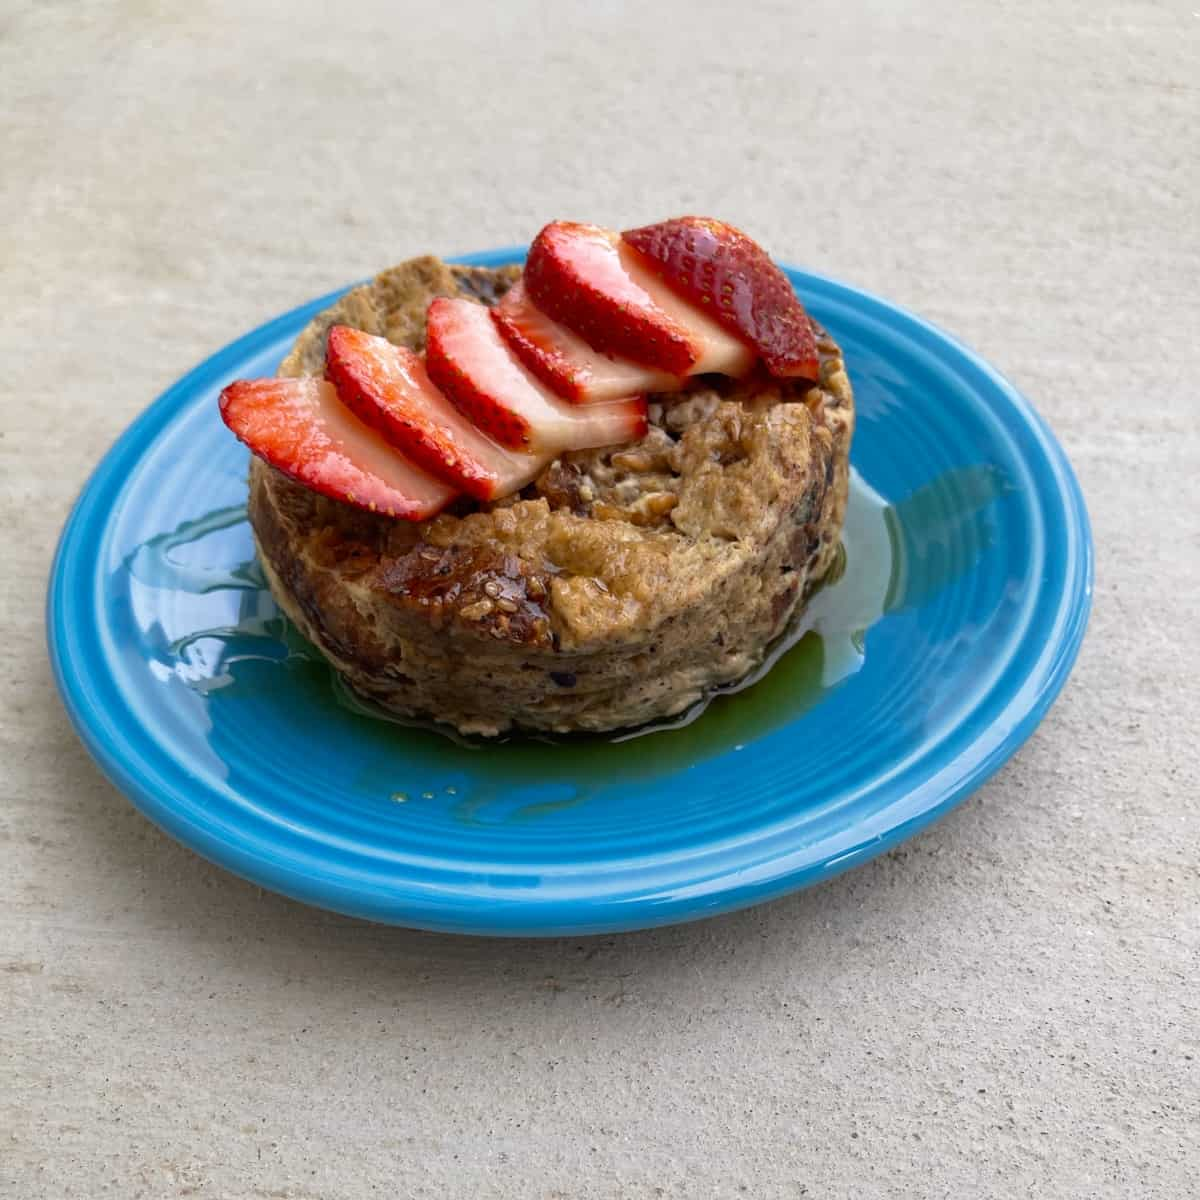 Microwave French toast topped with sliced strawberries and maple syrup on blue plate.